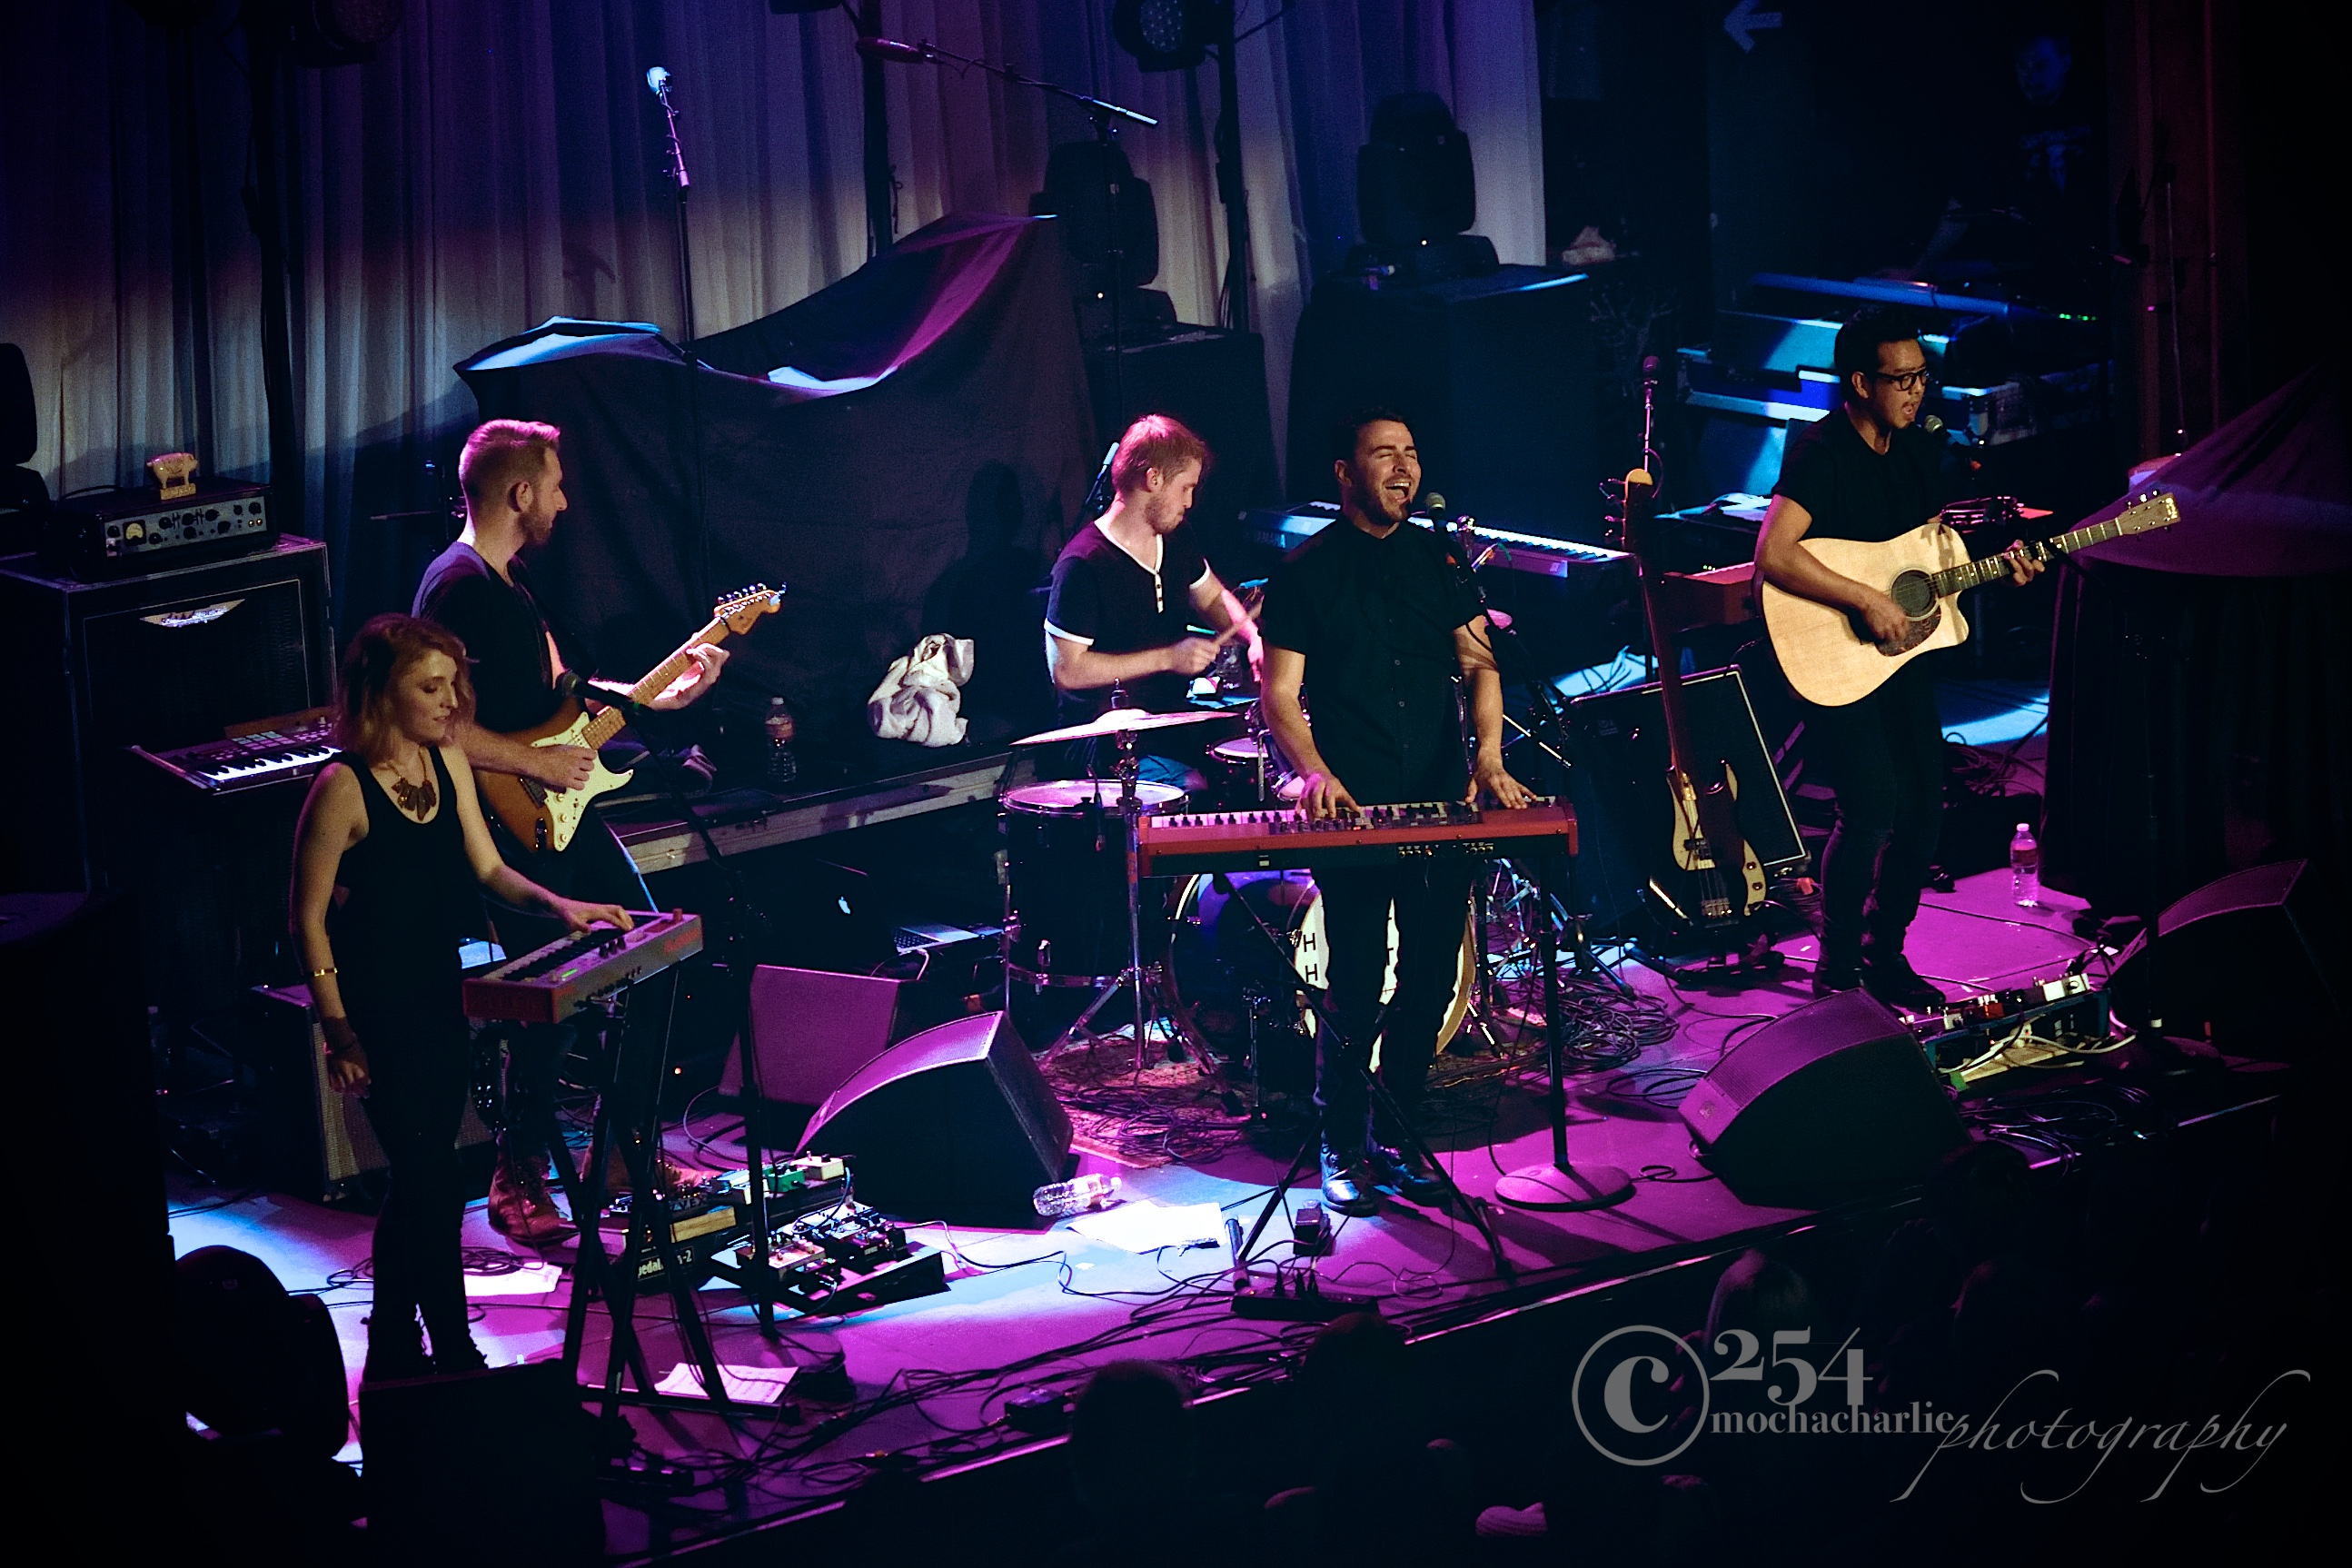 Hunter Hunted at The Neptune (Photo by Mocha Charlie)